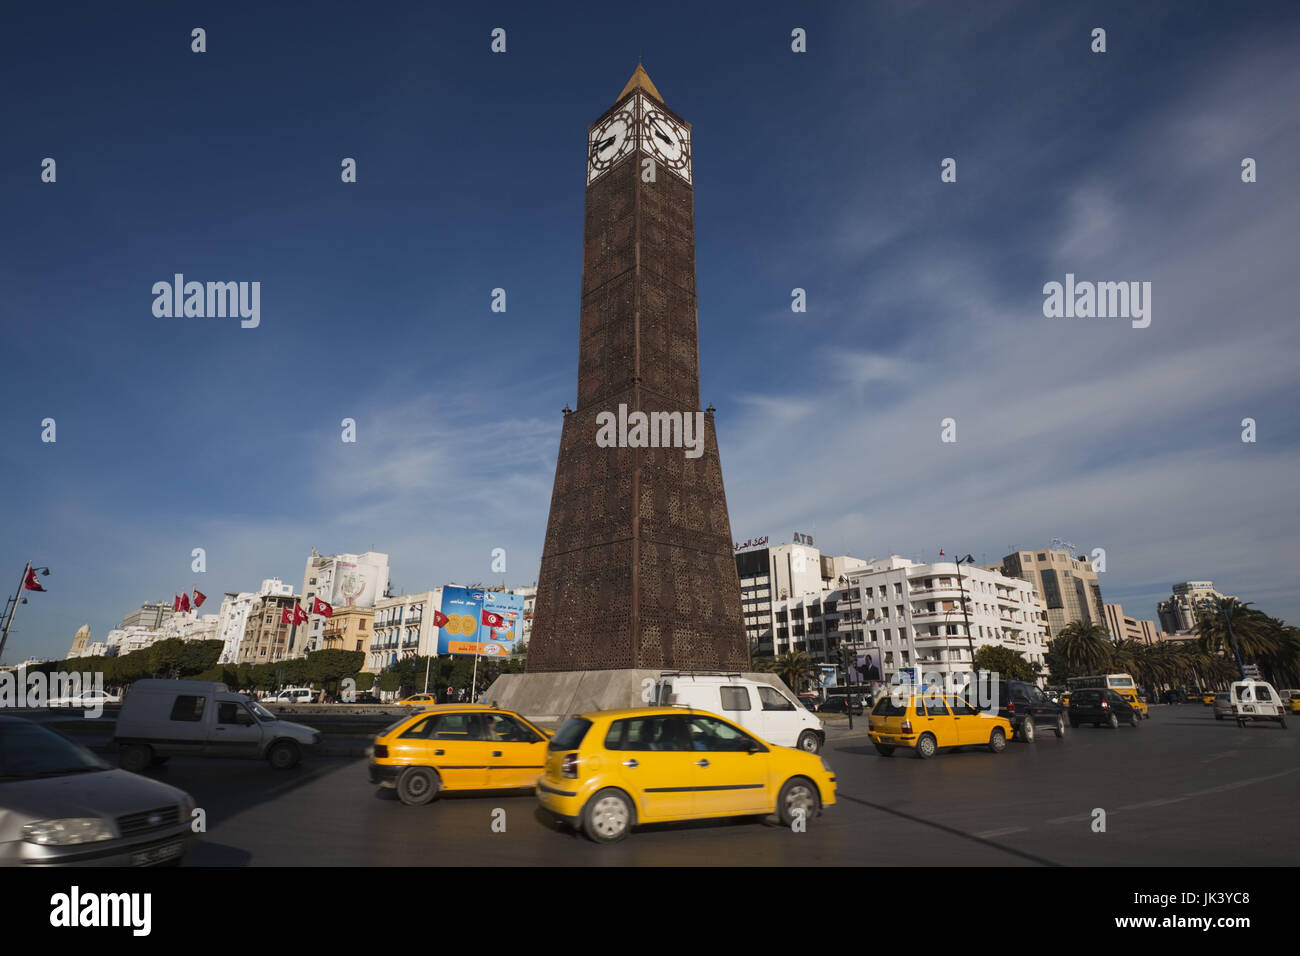 Tunisia, Tunis, Avenue Habib Bourguiba, Place du 7 Novembre 1987 clocktower, morning Stock Photo